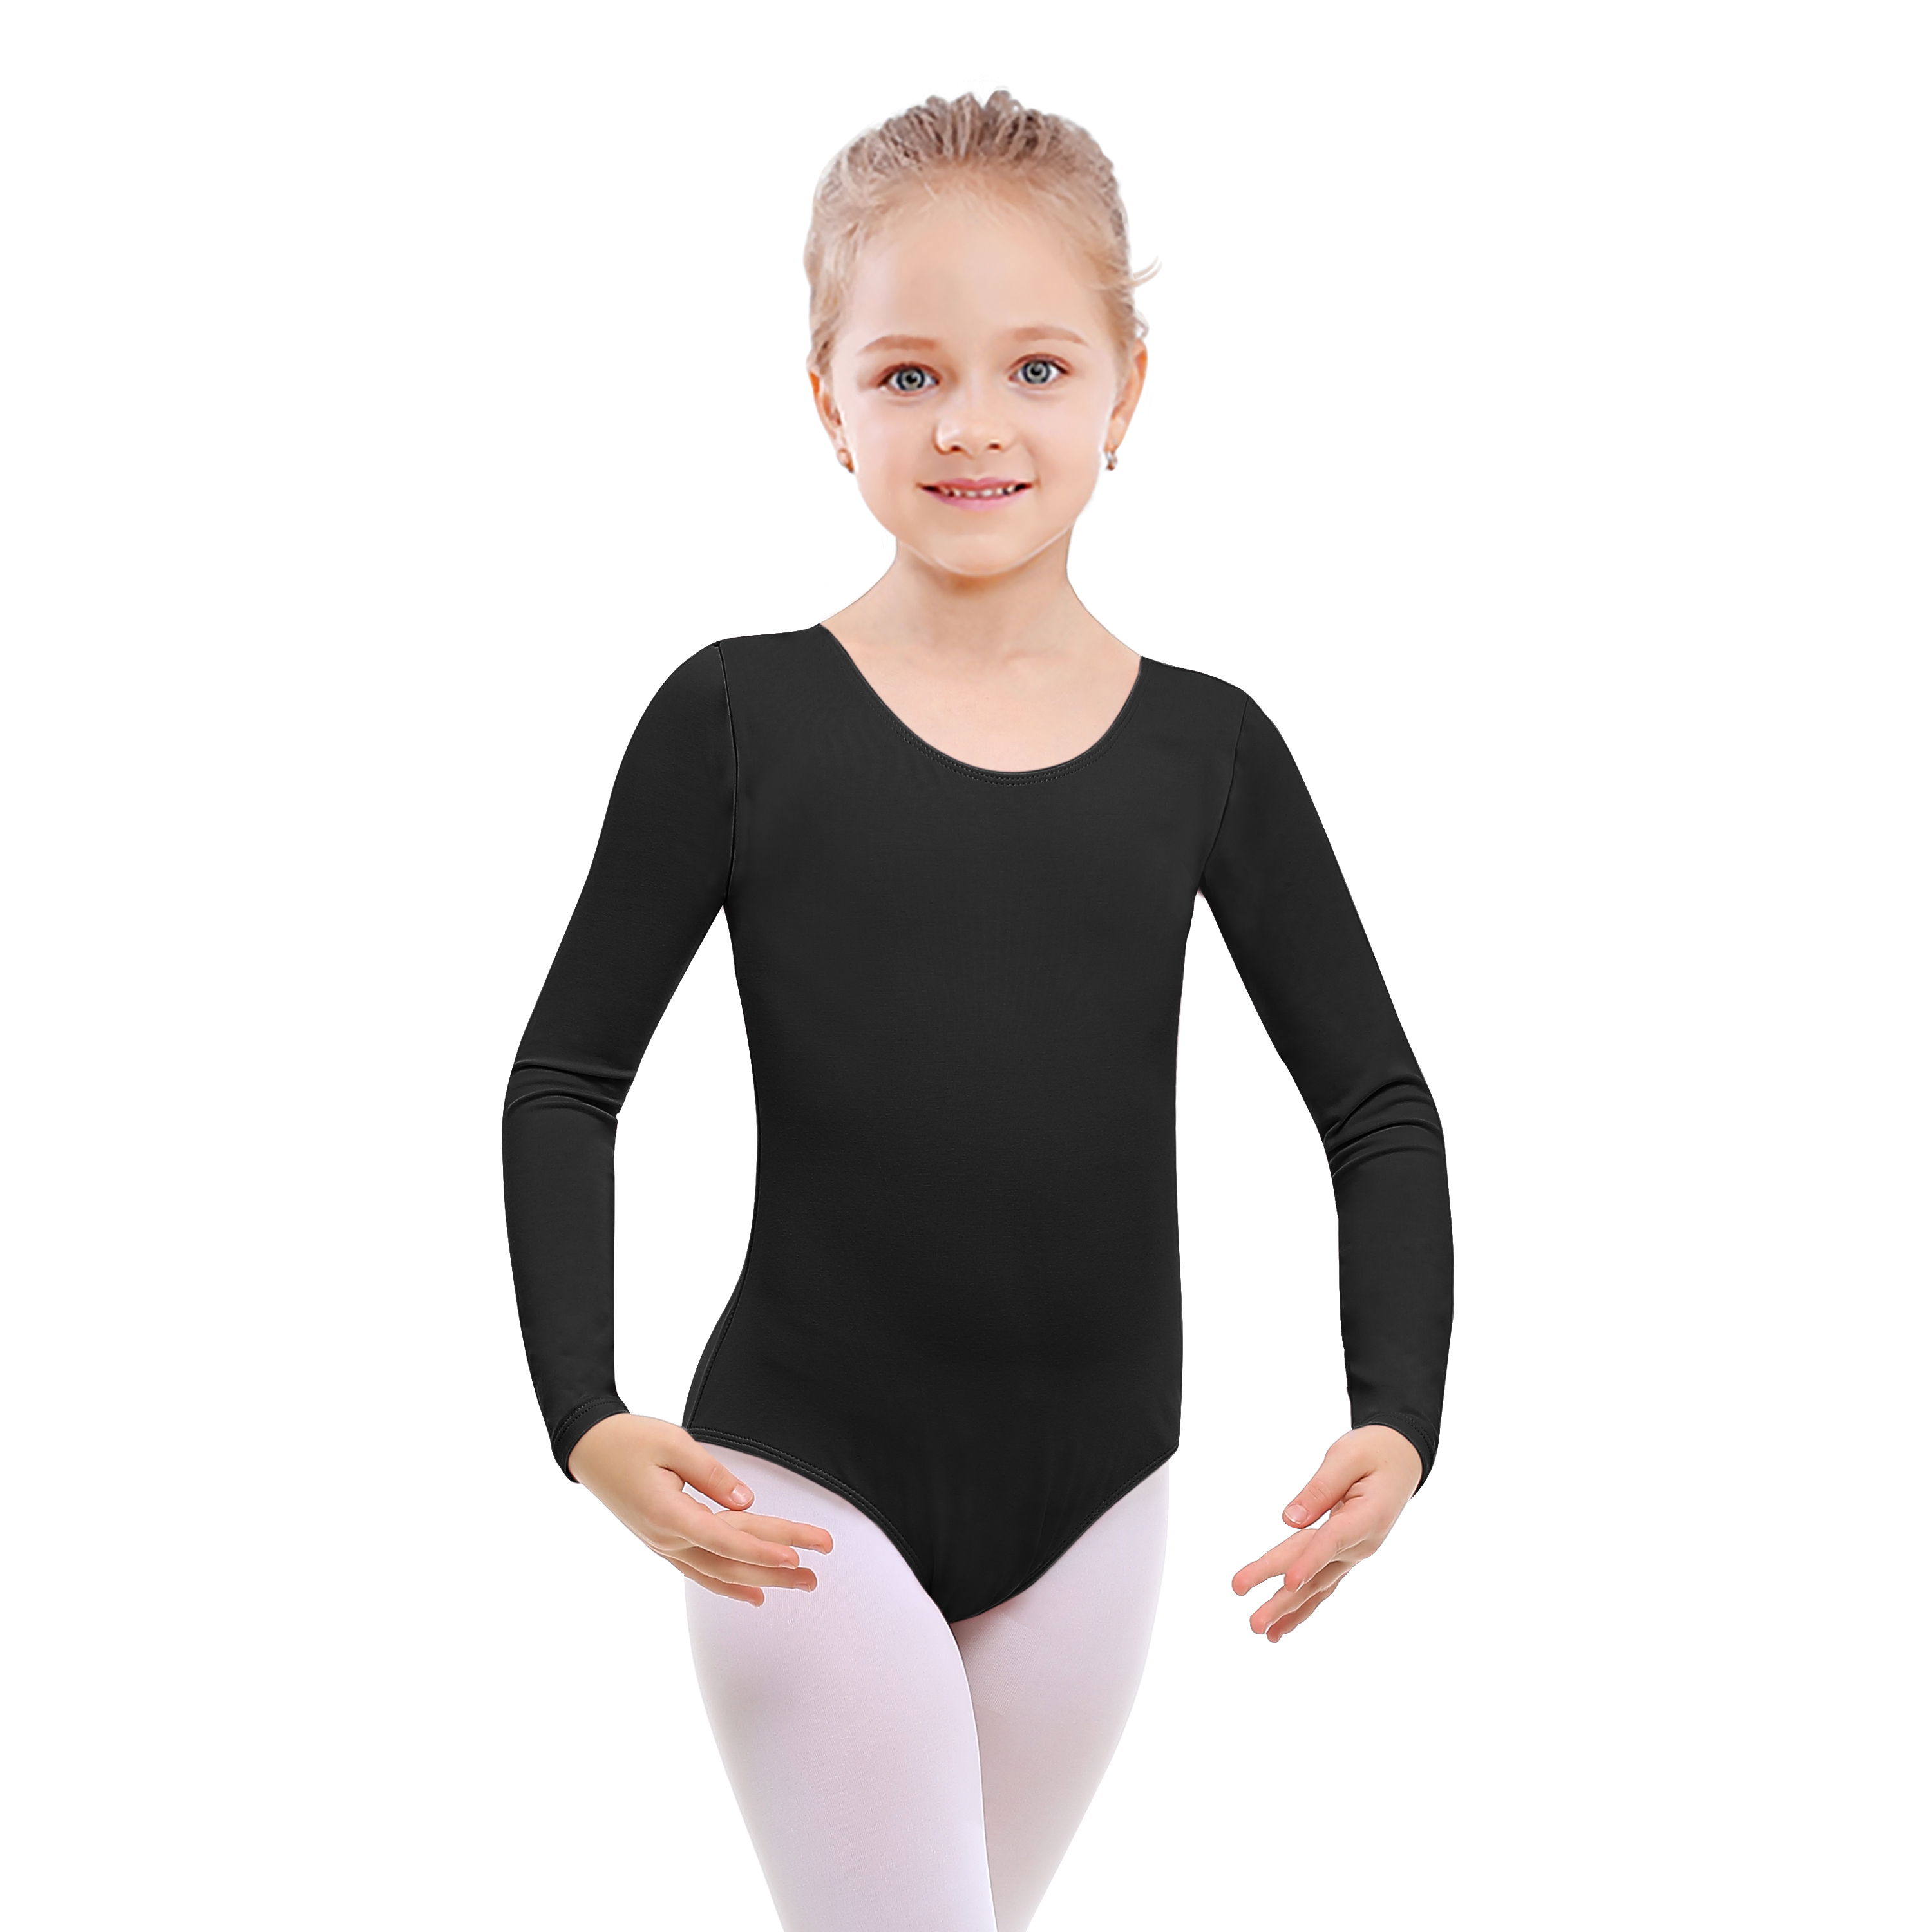 Details about  /NEW Dance Leotard Child Sizes MANY COLORS Cotton Basic Tank Body Wrappers Ballet